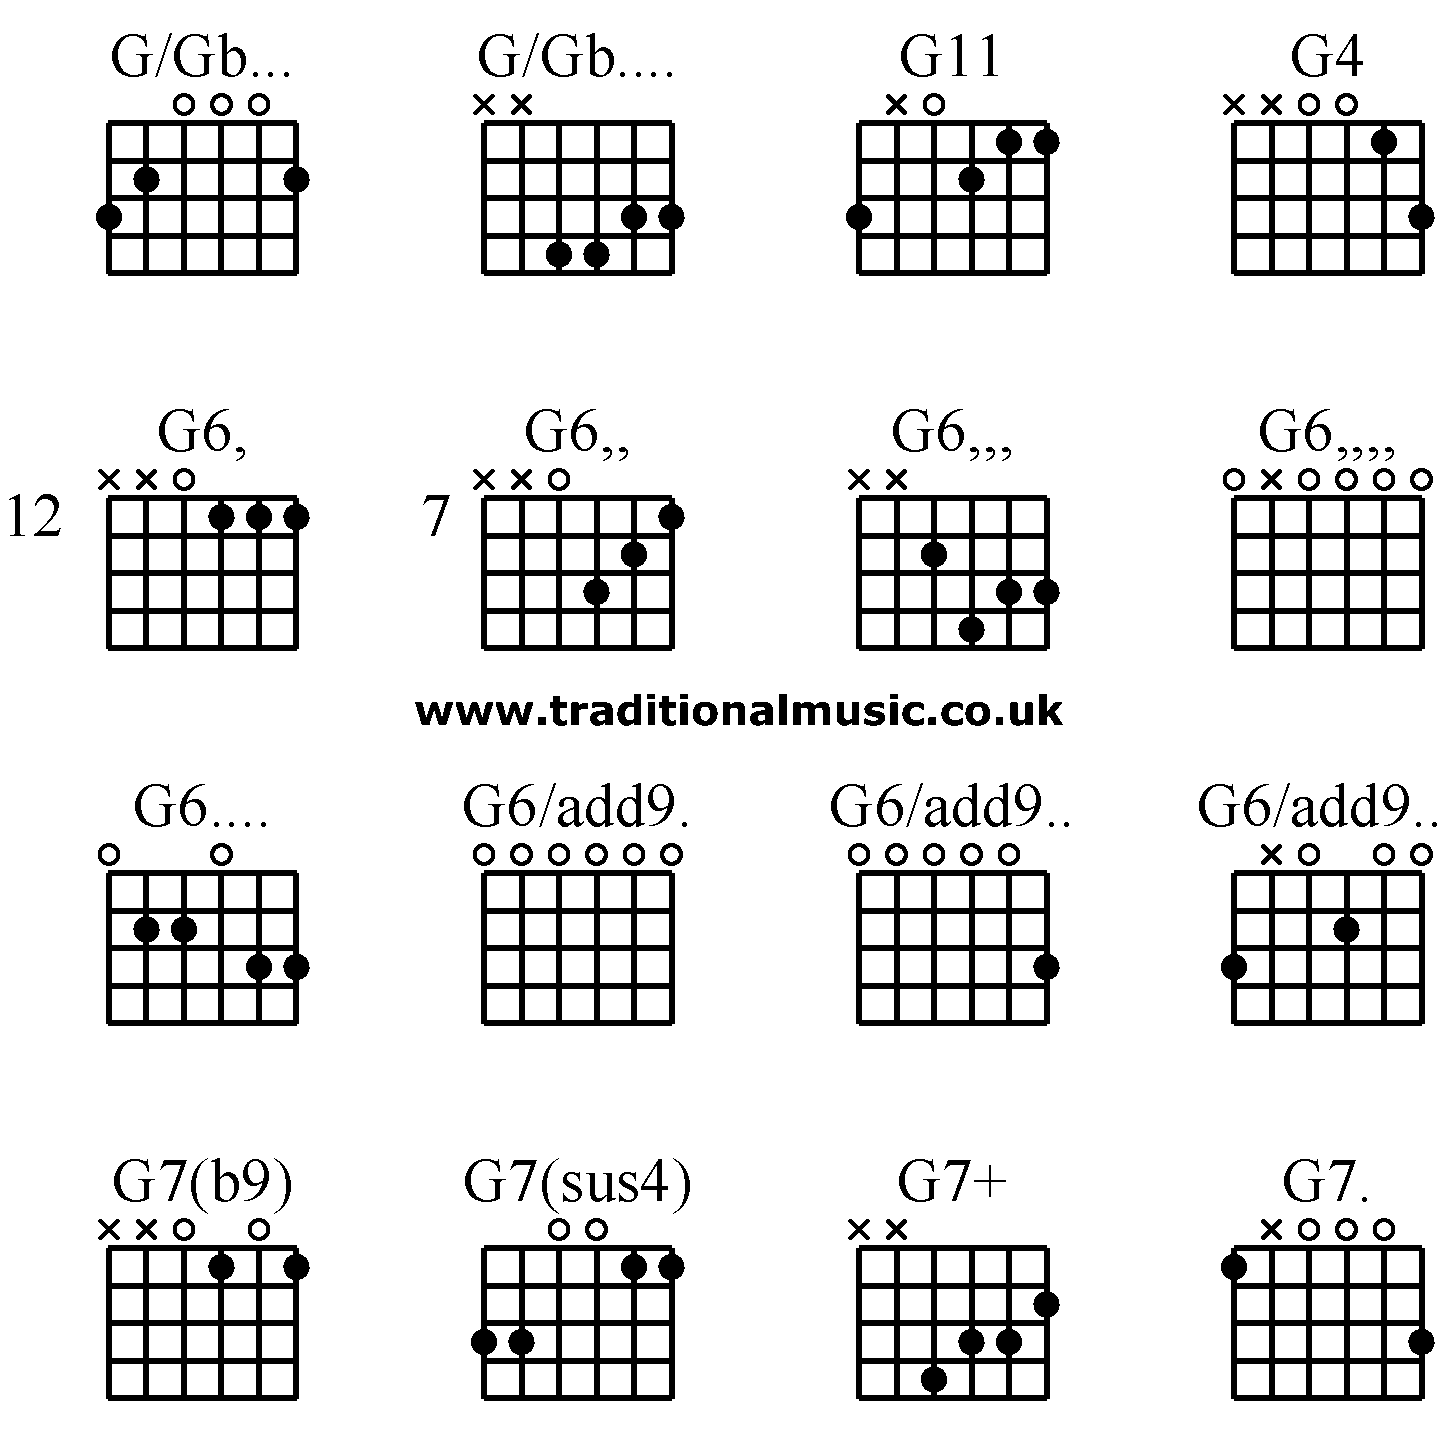 Guitar chords advanced - G/Gb. G/Gb. G11 G4 G6, G6, G6, G6, G6. G6/add9. G6/add9. G6/add9. G7(b9 ...